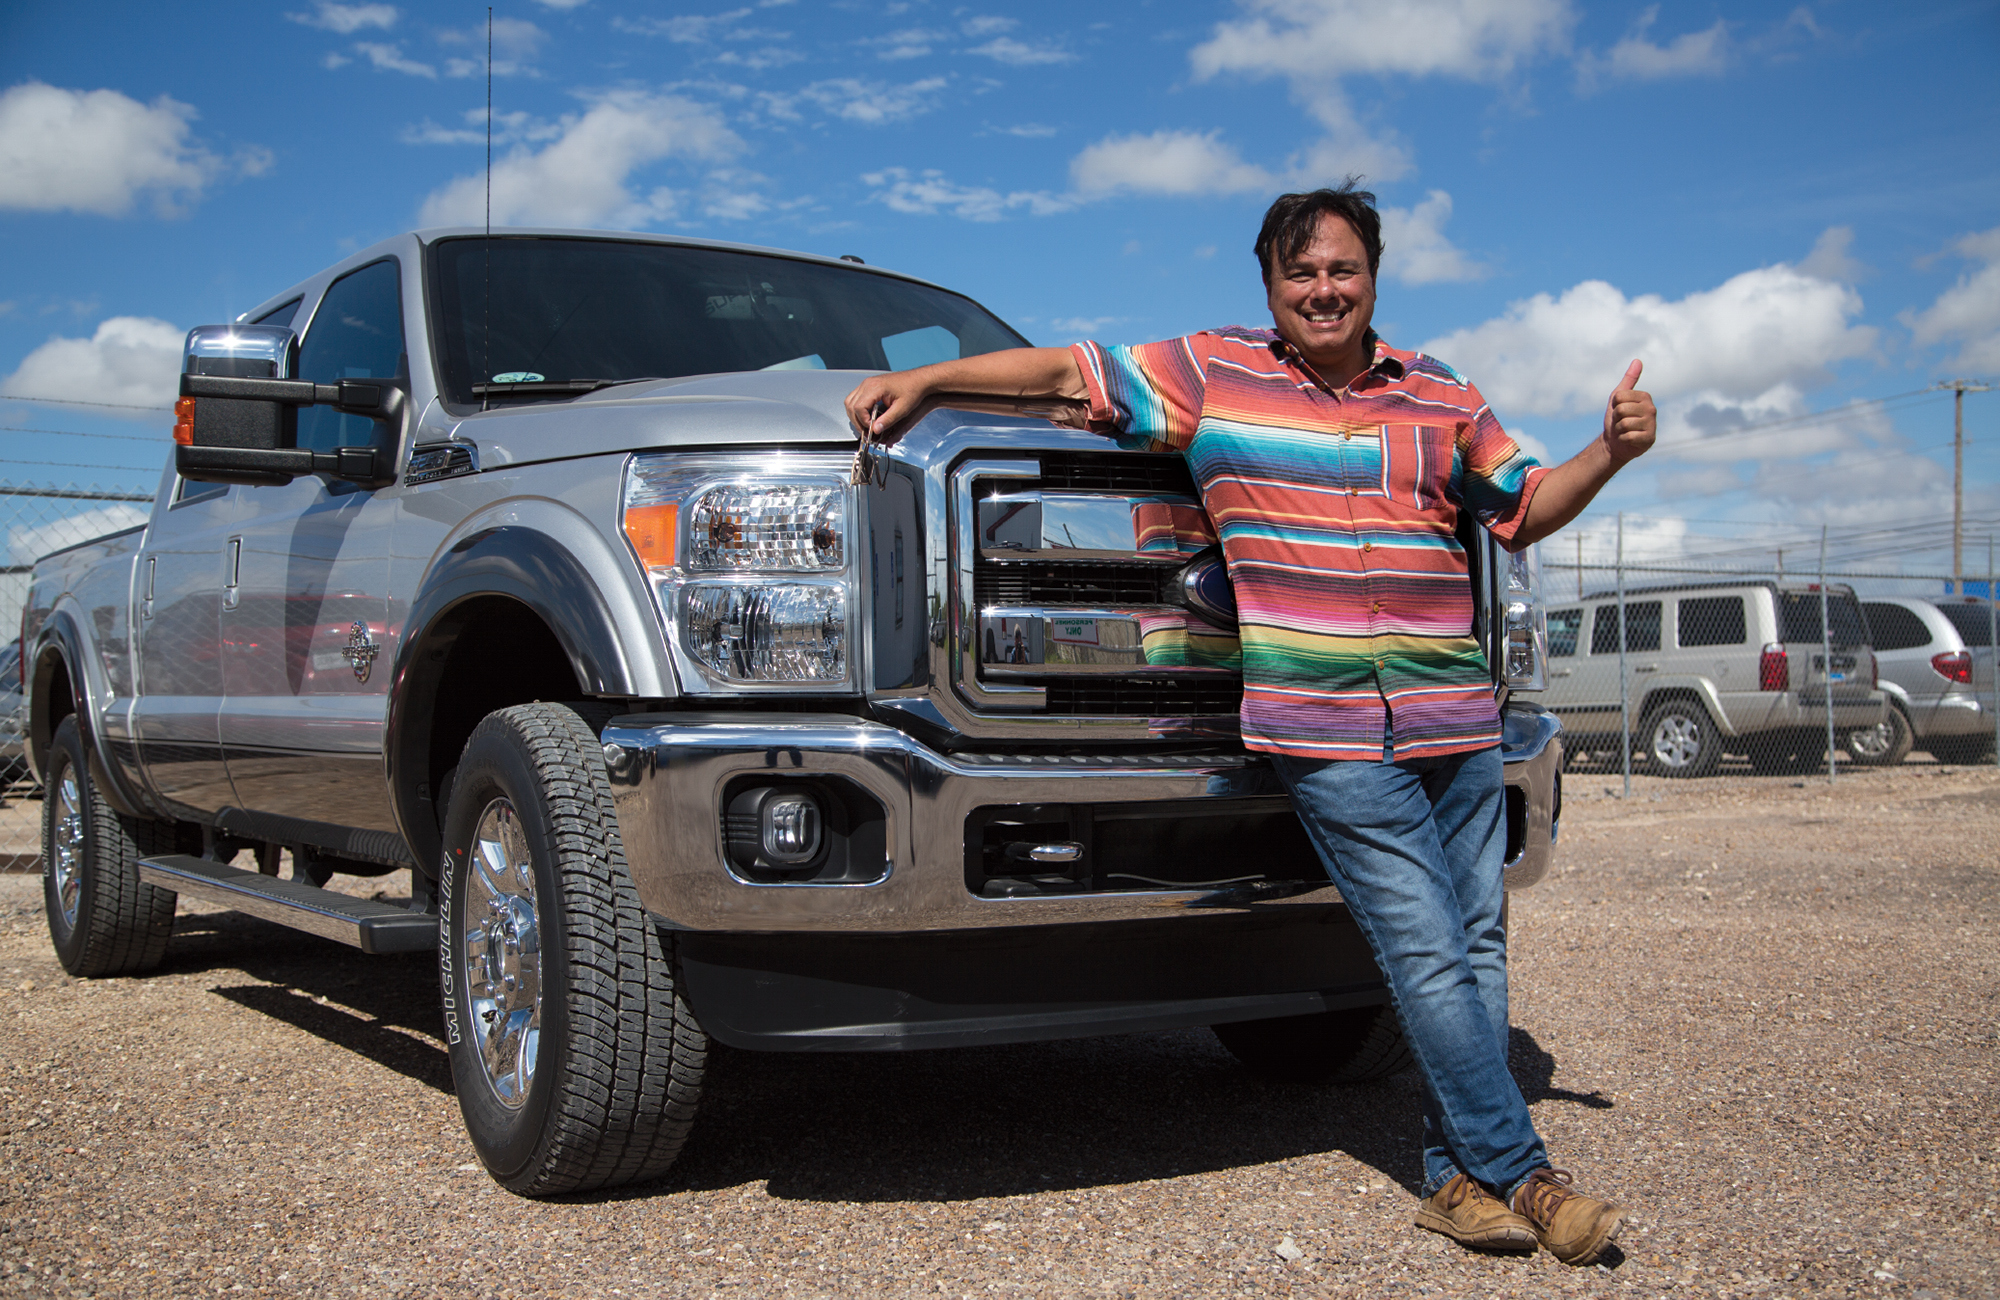 Gerardo Serrano and his formerly seized truck that was given back by Customs and Border protection.